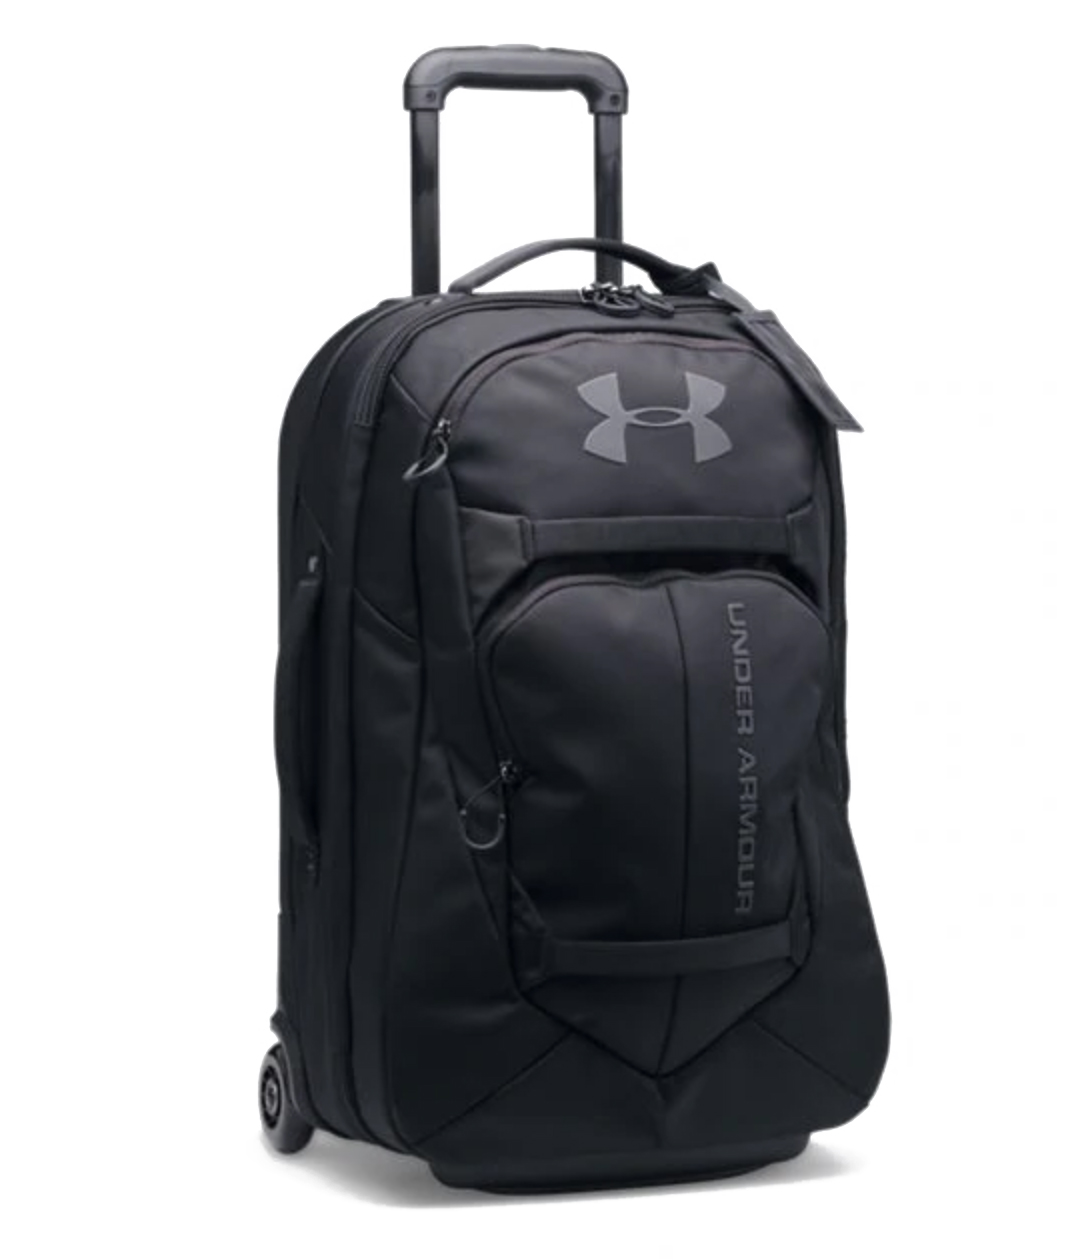 Under Armor Carry-On Roller